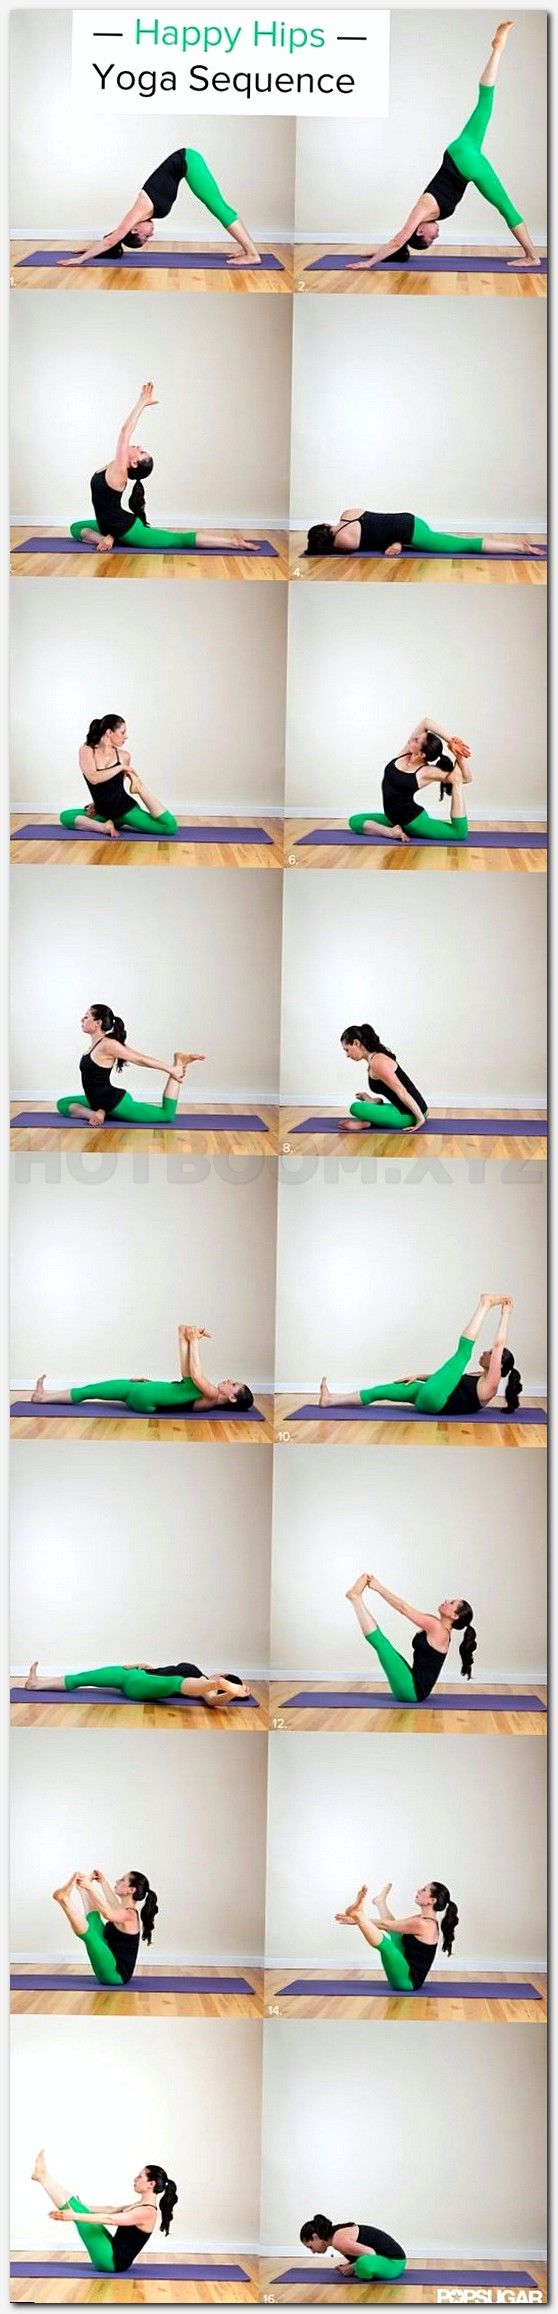 yoga positions to lose weight, spirulina plant images, baba ramdev yoga for pregnancy, quick weight loss center diet plan, how to tighten skin after weight loss, short essay on yoga, exercise to reduce tummy fat, belly exercises to lose weight fast, how to reduce weight in 7 days 5 kg, beginner yoga routine, get skinny diet, yoga early pregnancy, dxn spirulina for weight loss, yoga schedule for weight loss, joga meaning, evening yoga for weight loss